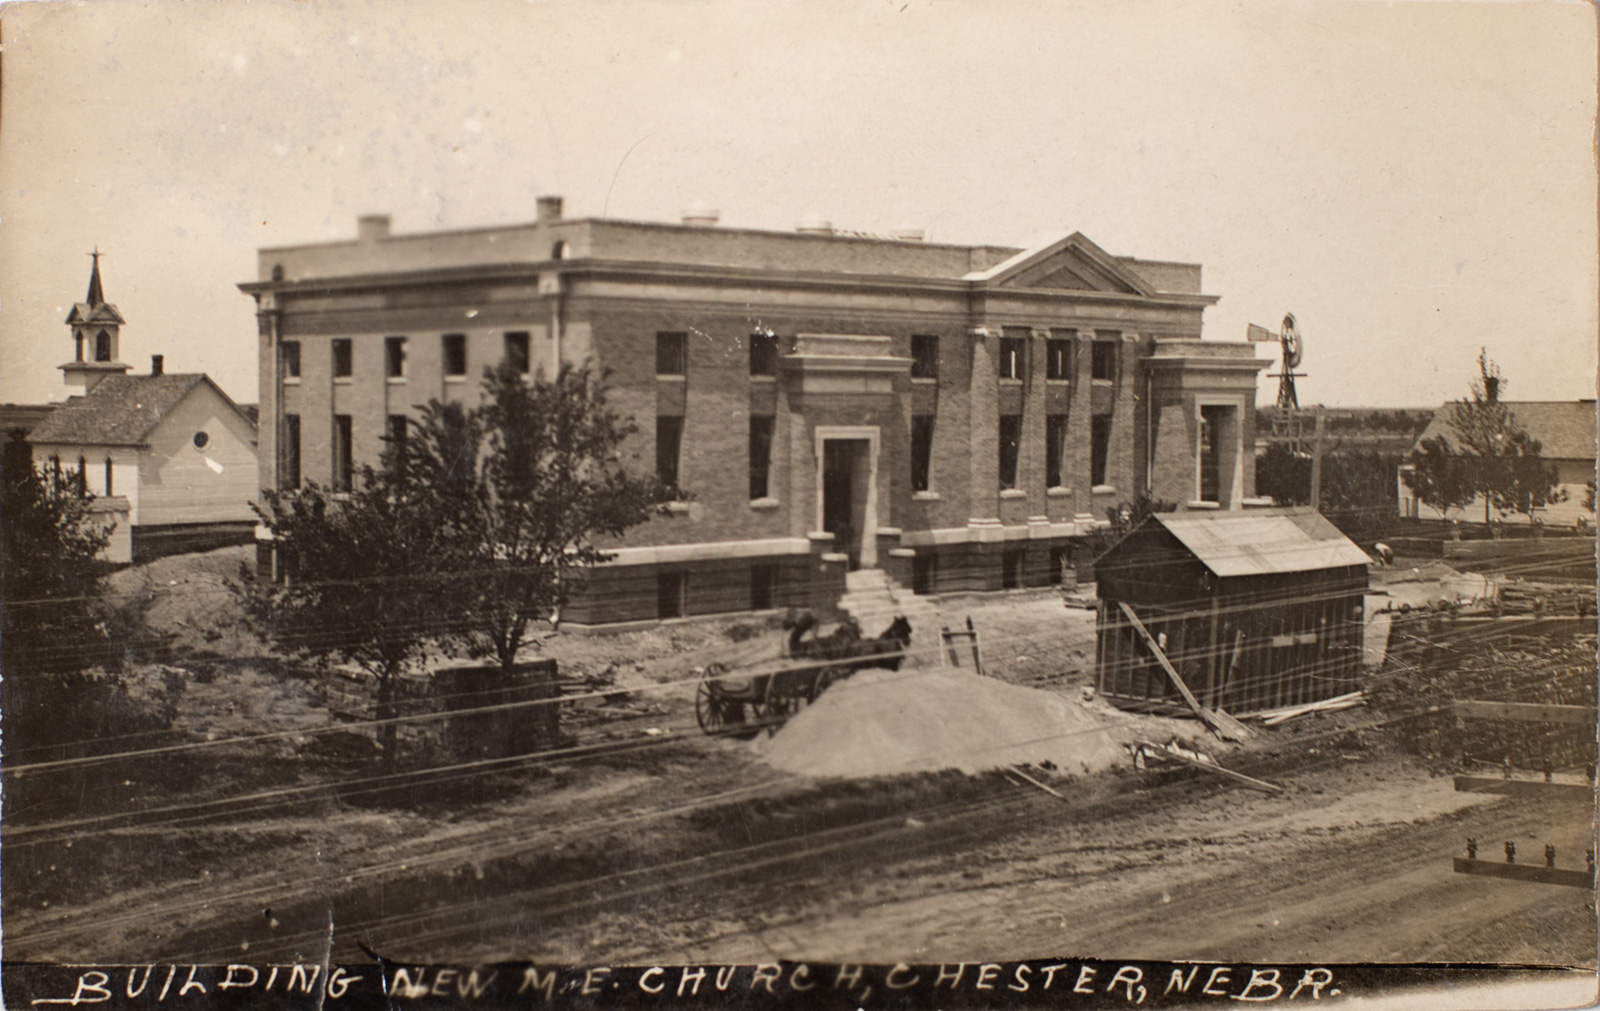 Building the Methodist Church in Chester Nebraska - 1910 Image